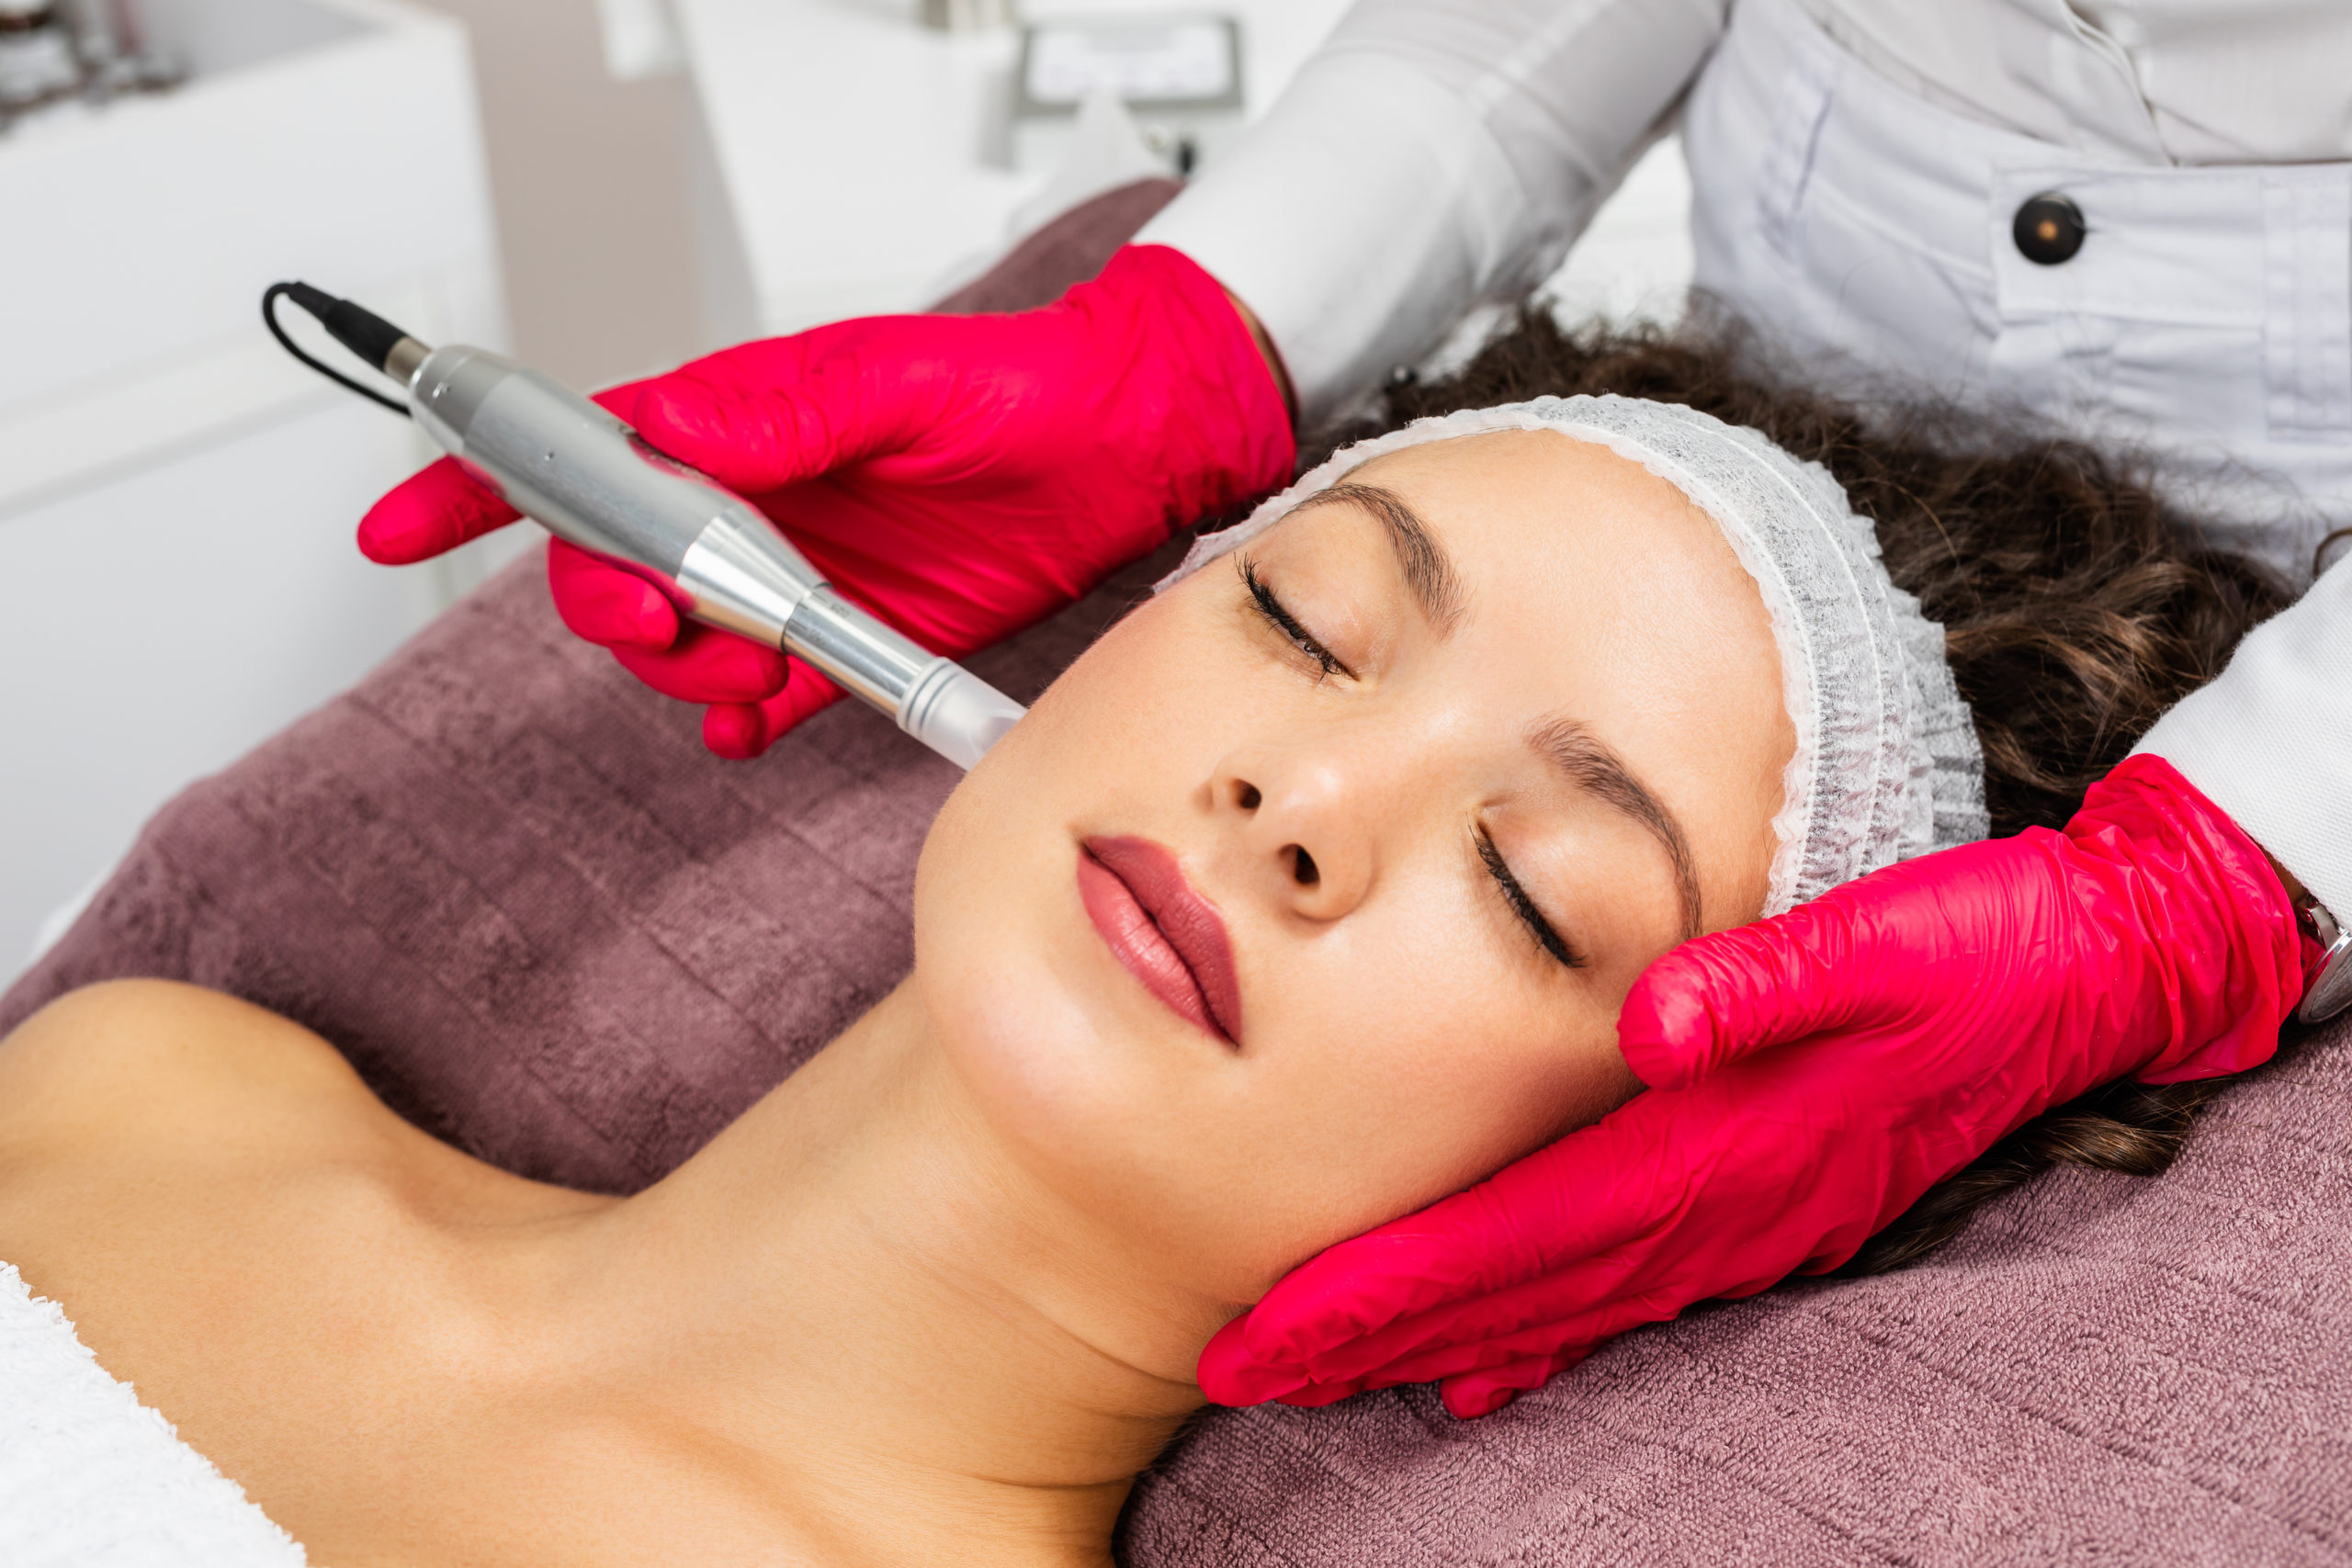 aesthetician applying microneedling treatment to woman's face